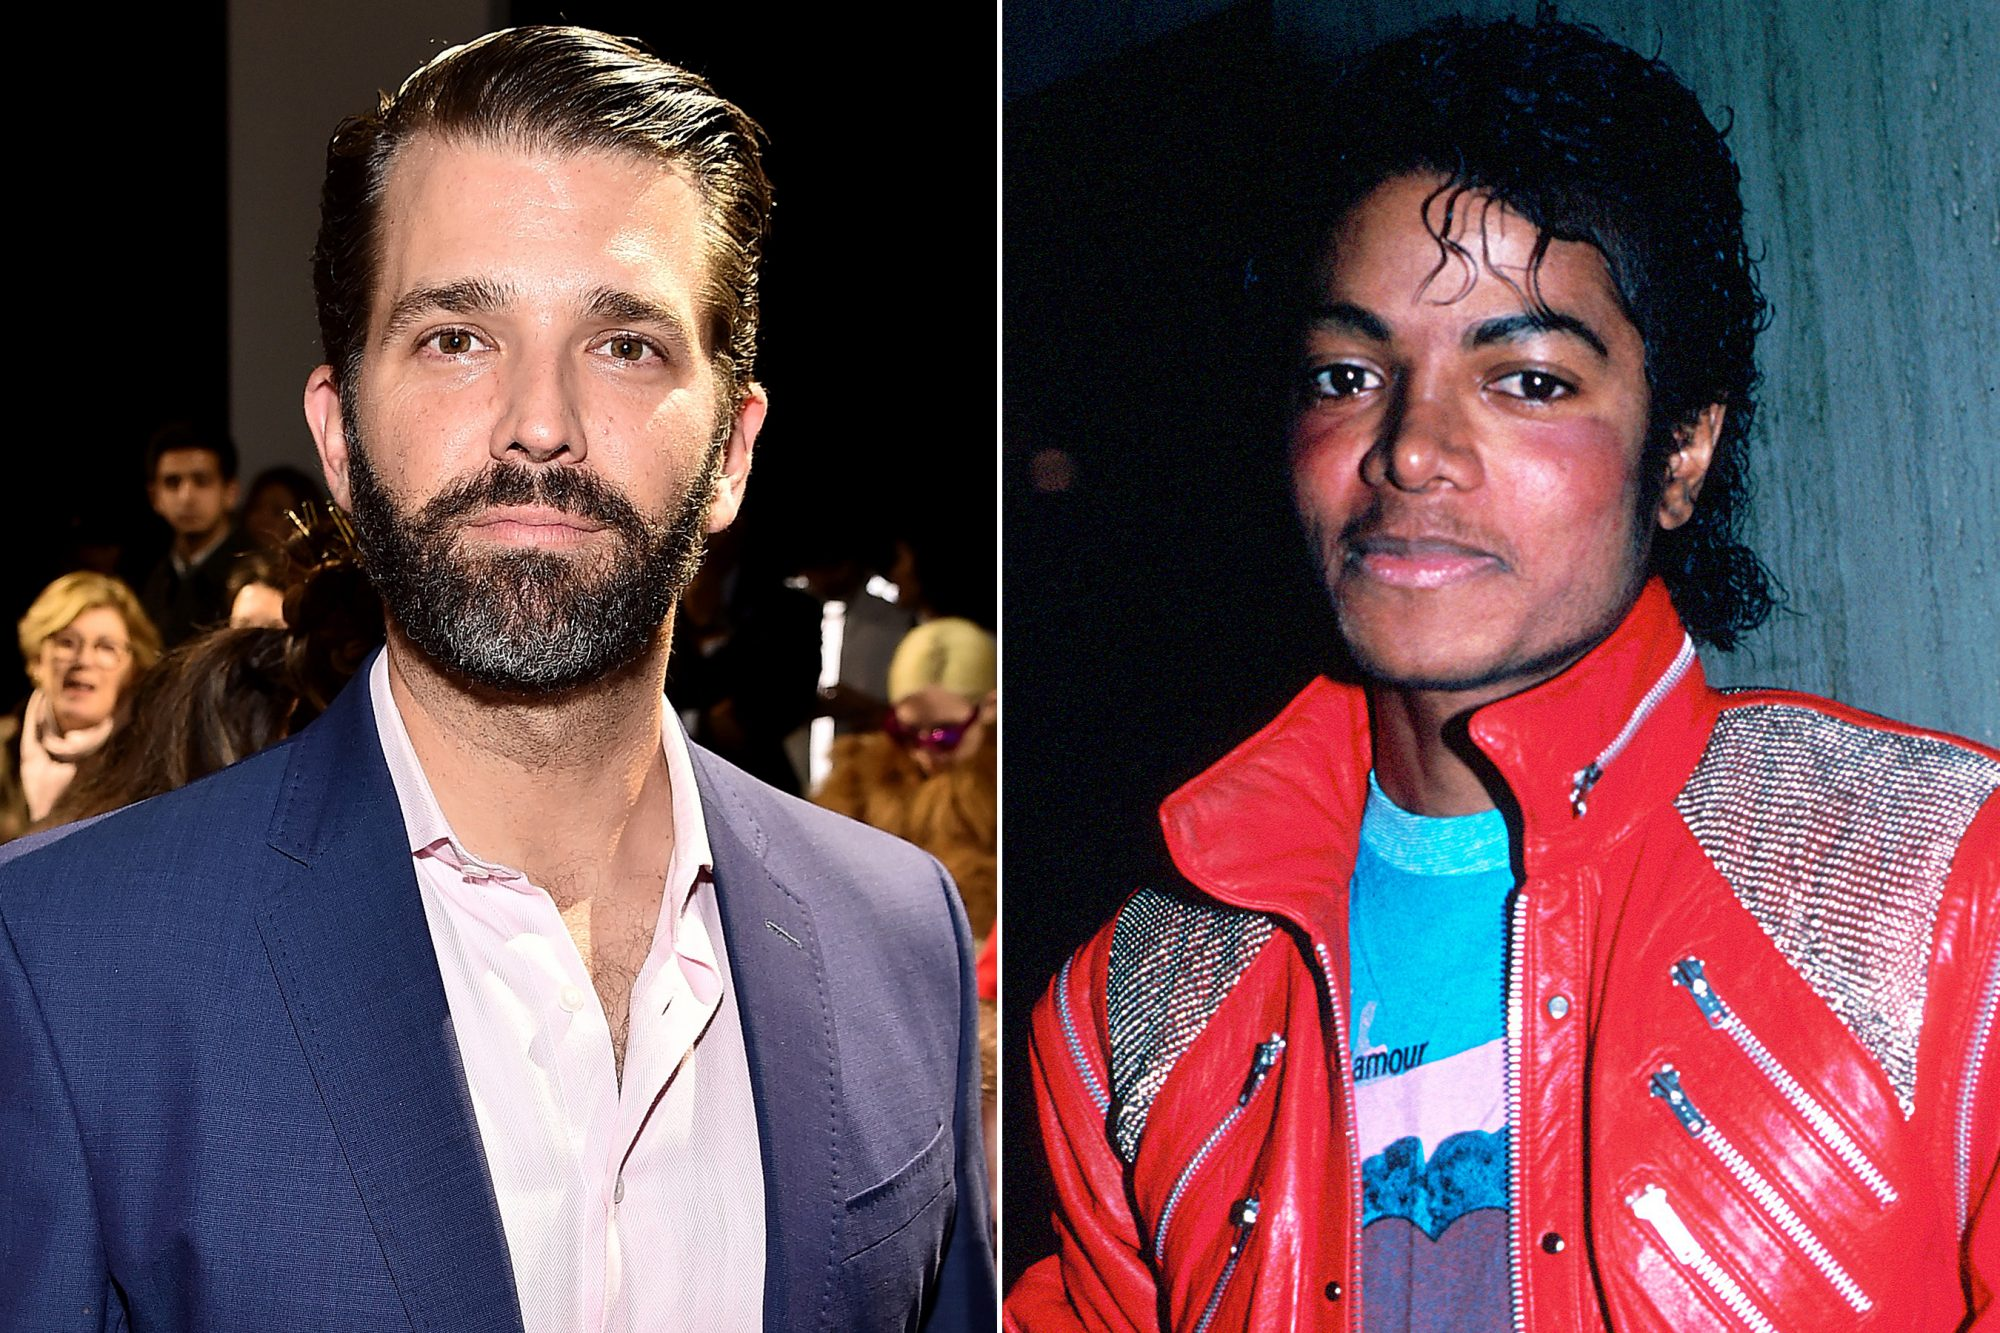 Donald Trump Jr, Michael Jackson